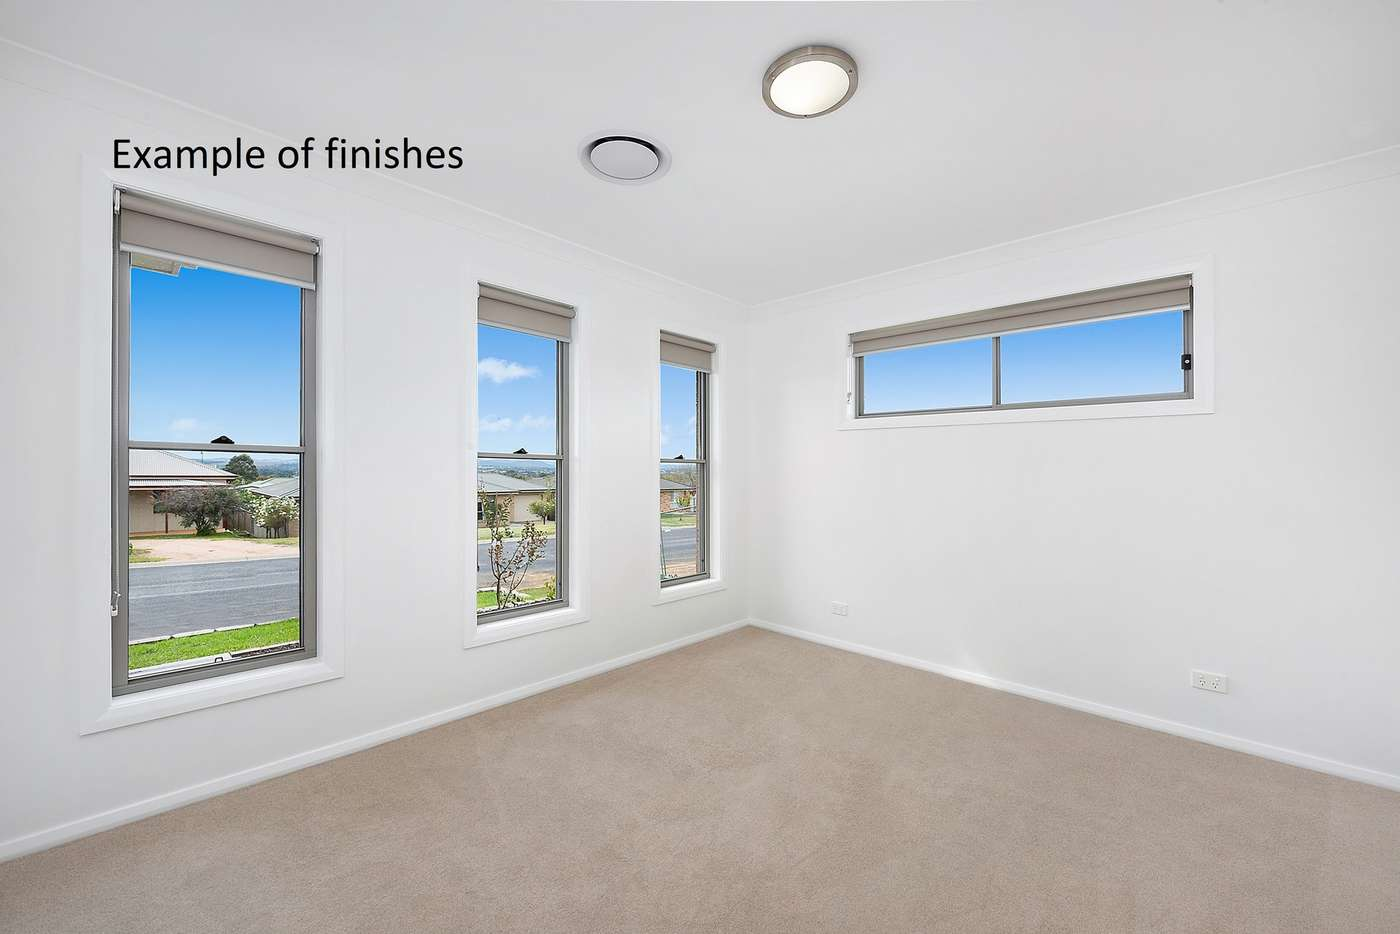 Sixth view of Homely house listing, 3 Kilkenny Avenue, Mudgee NSW 2850